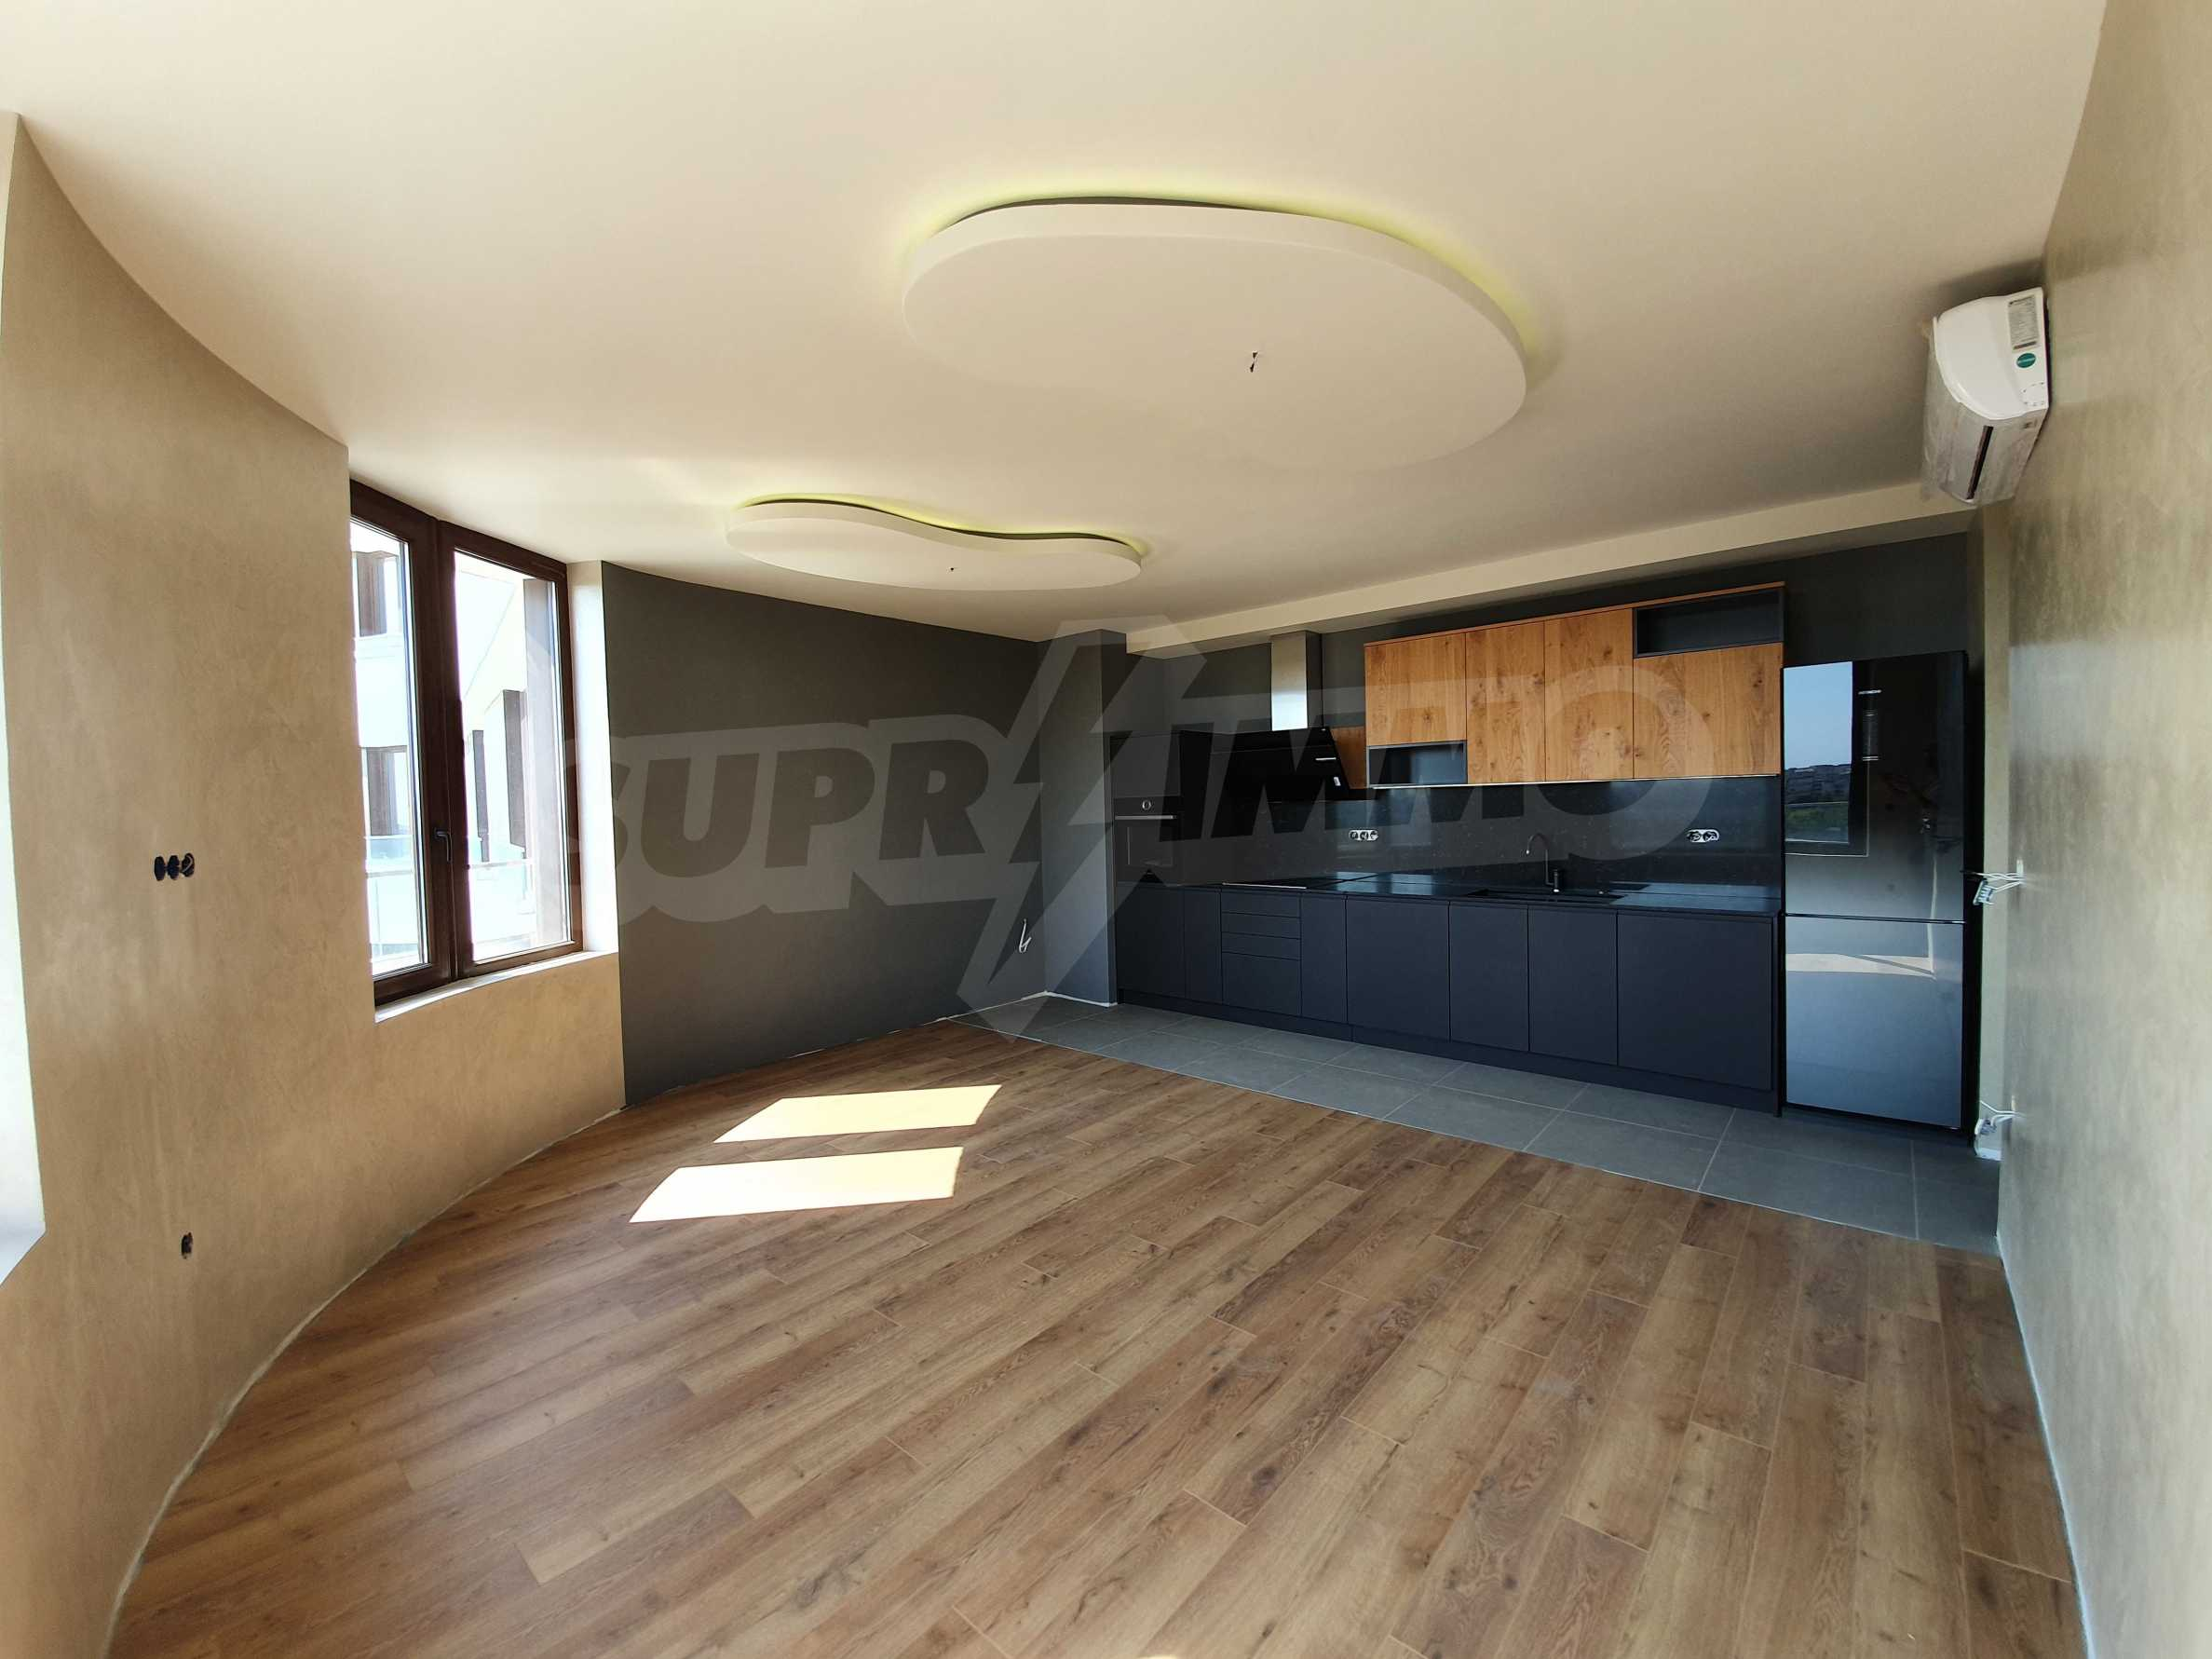 Panoramic two-bedroom apartment with views of the lake and Varna 2